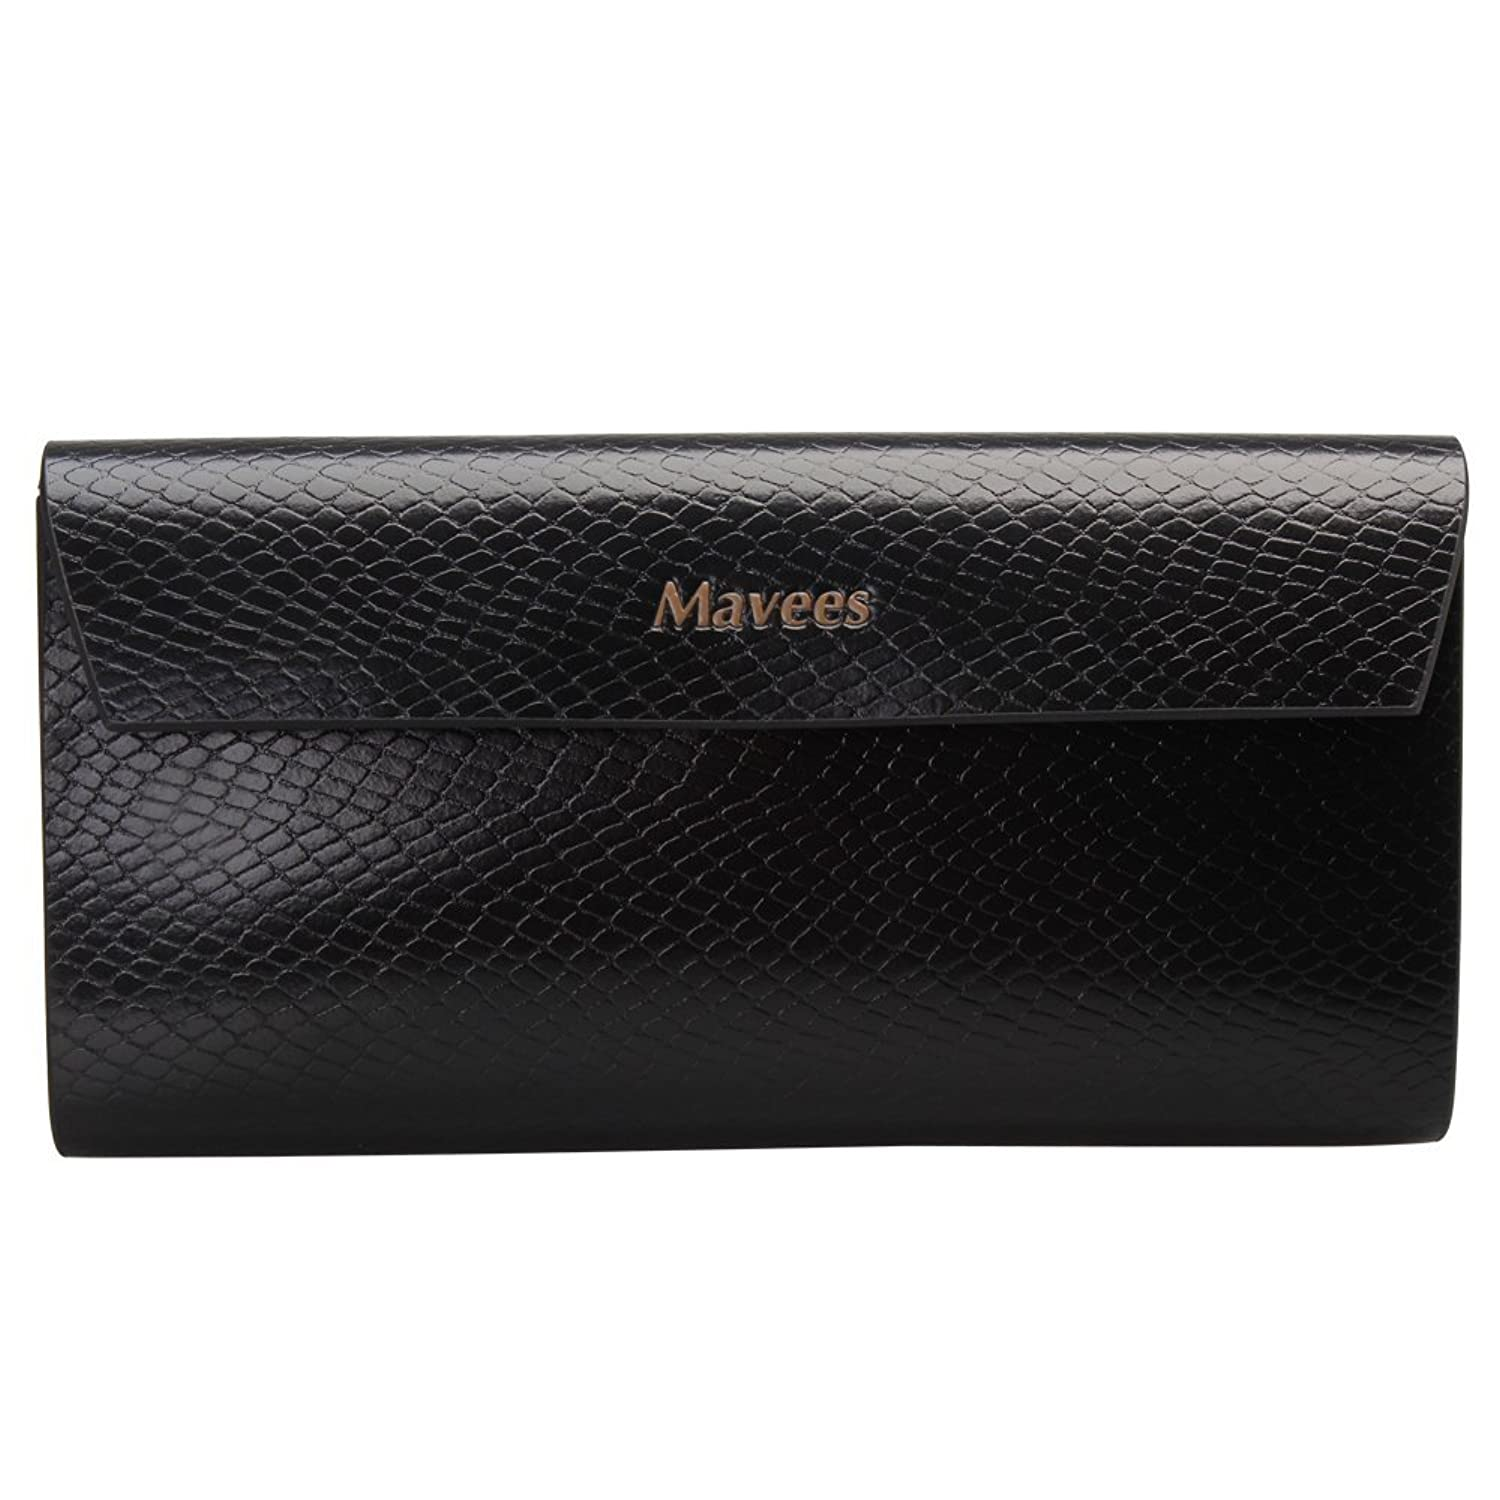 Mavees Leather Long Wallet Unisex Clutches MA429481-99